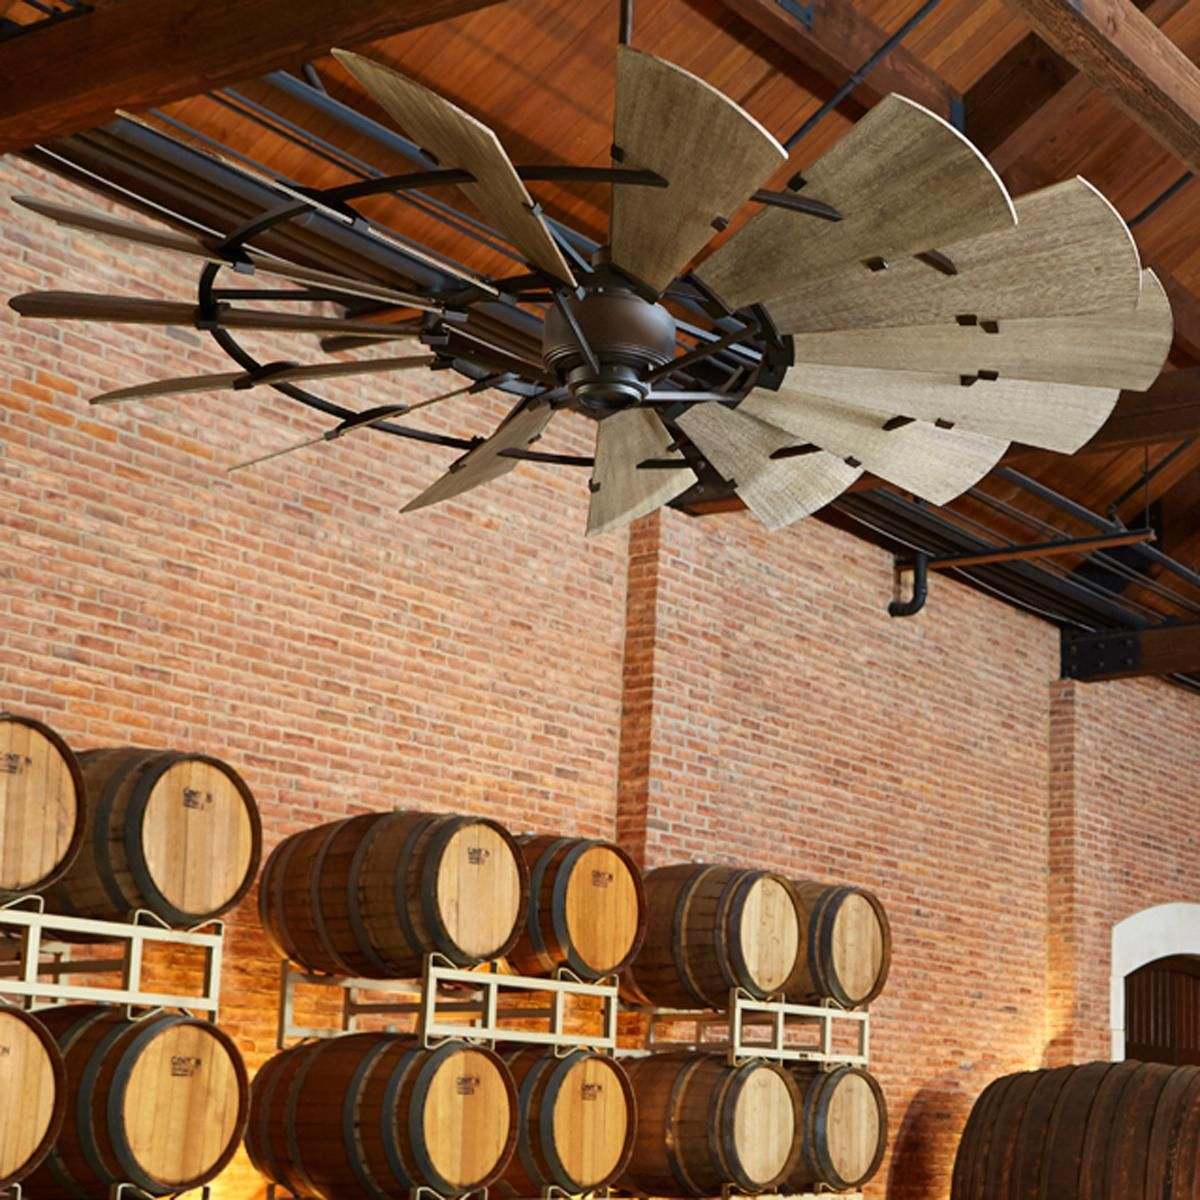 60 Rustic Windmill Ceiling Fan This Stunning Utilizes Fifteen Dramatically Tilted Blades Channeling The Design Of A